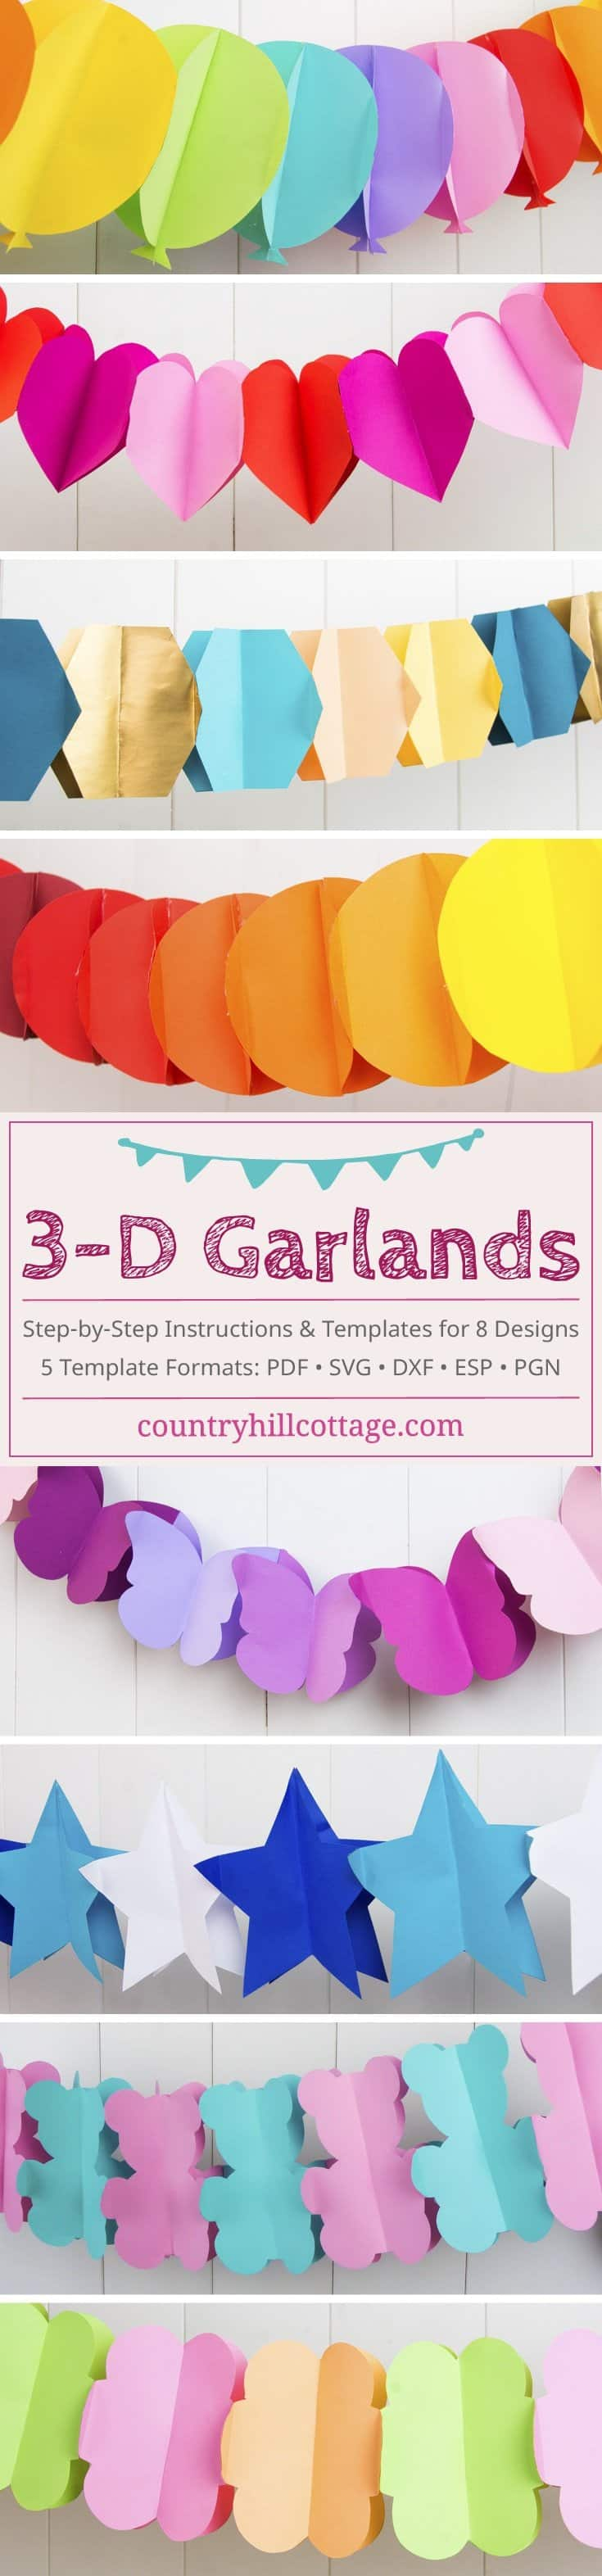 Learn how to make pretty 3-D paper garlands. The garlands are made of cardstock and looks great as decoration for weddings, engagements, birthdays and parties. We created an eBook with more templates, such as balloons, butterflies, or stars, which are fantastic to set the scene for any celebration. #papercrafts #partydecor #DIY #garland | countryhillcottage.com